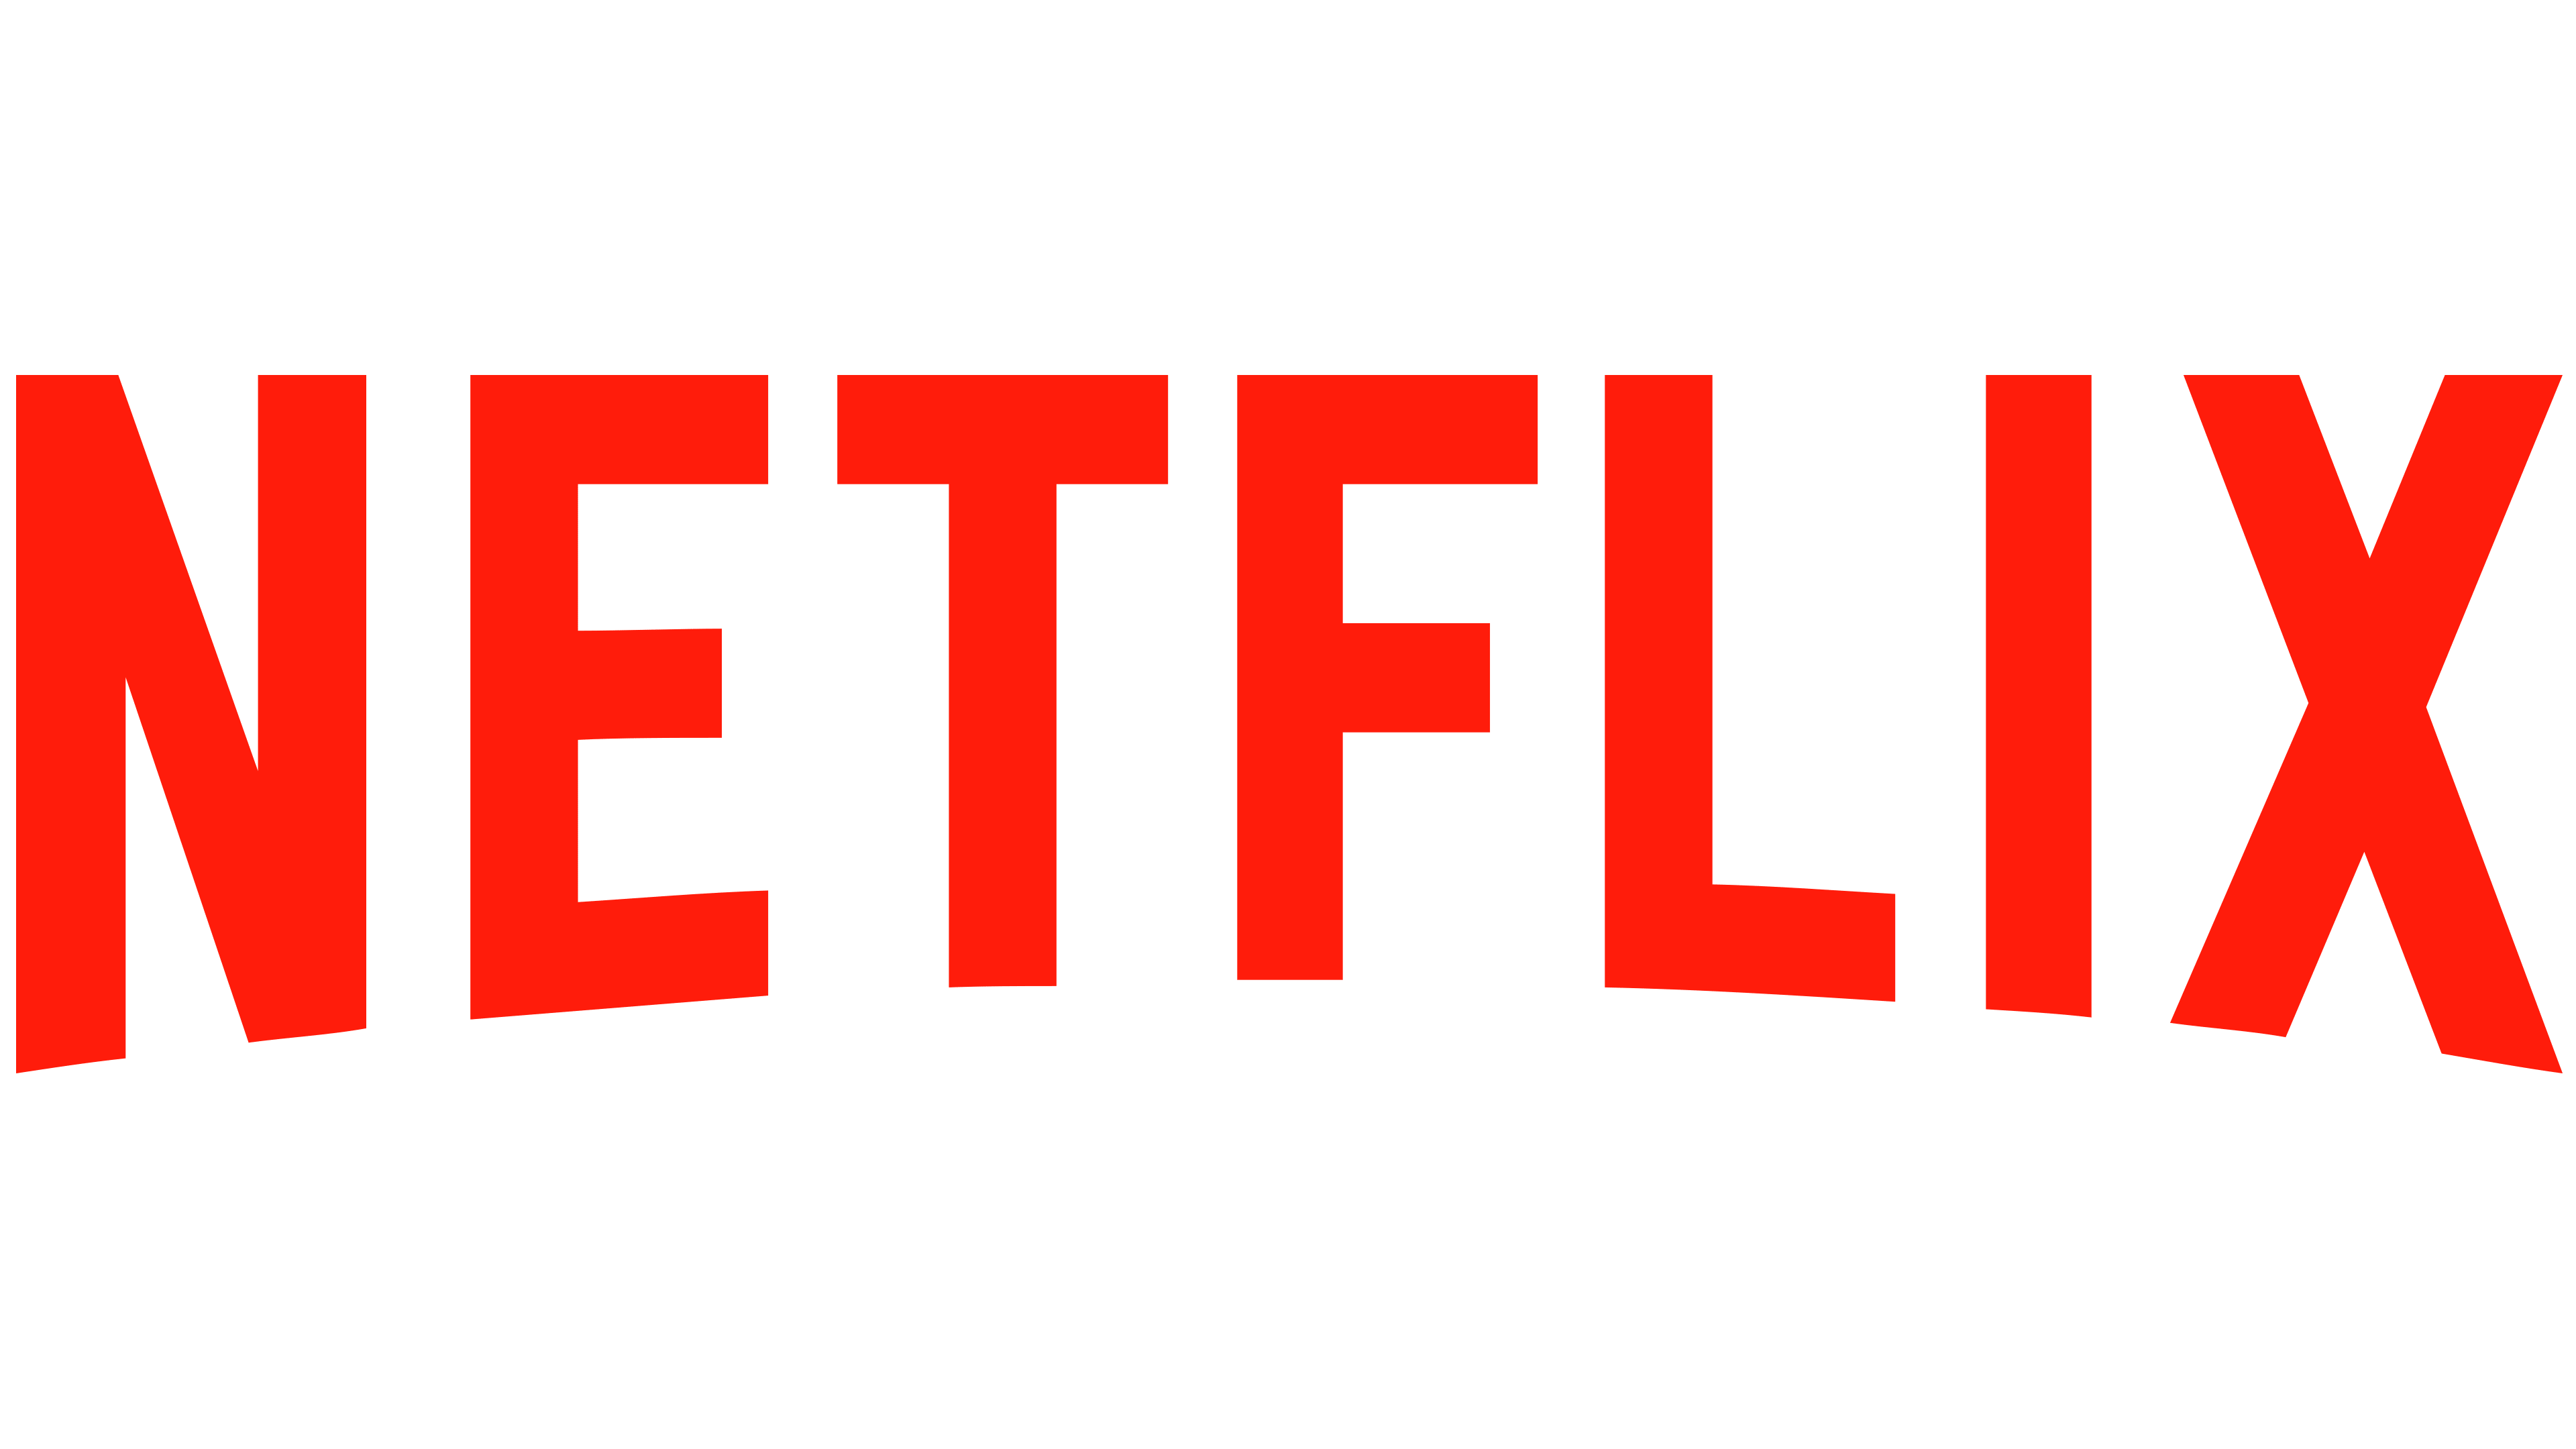 Netflix Logo | The most famous brands and company logos in the world